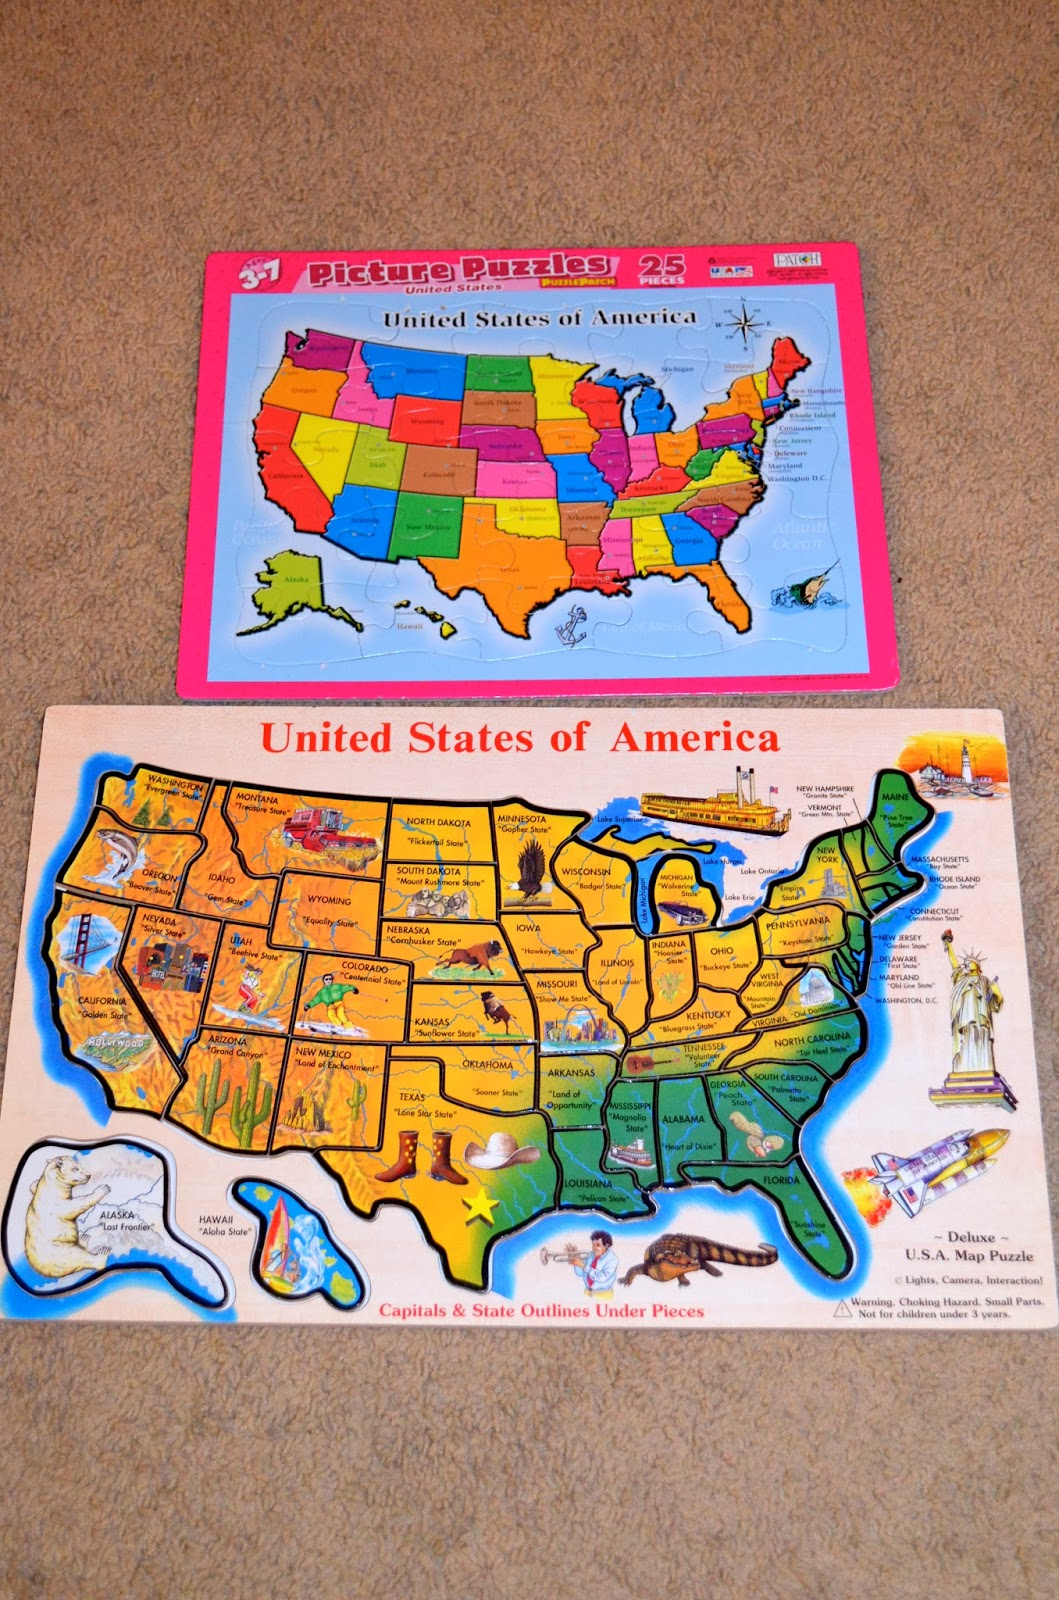 we also talked about the united states and did some puzzles malia is working on memorizing a song that i learned in 4th grade that puts the states in